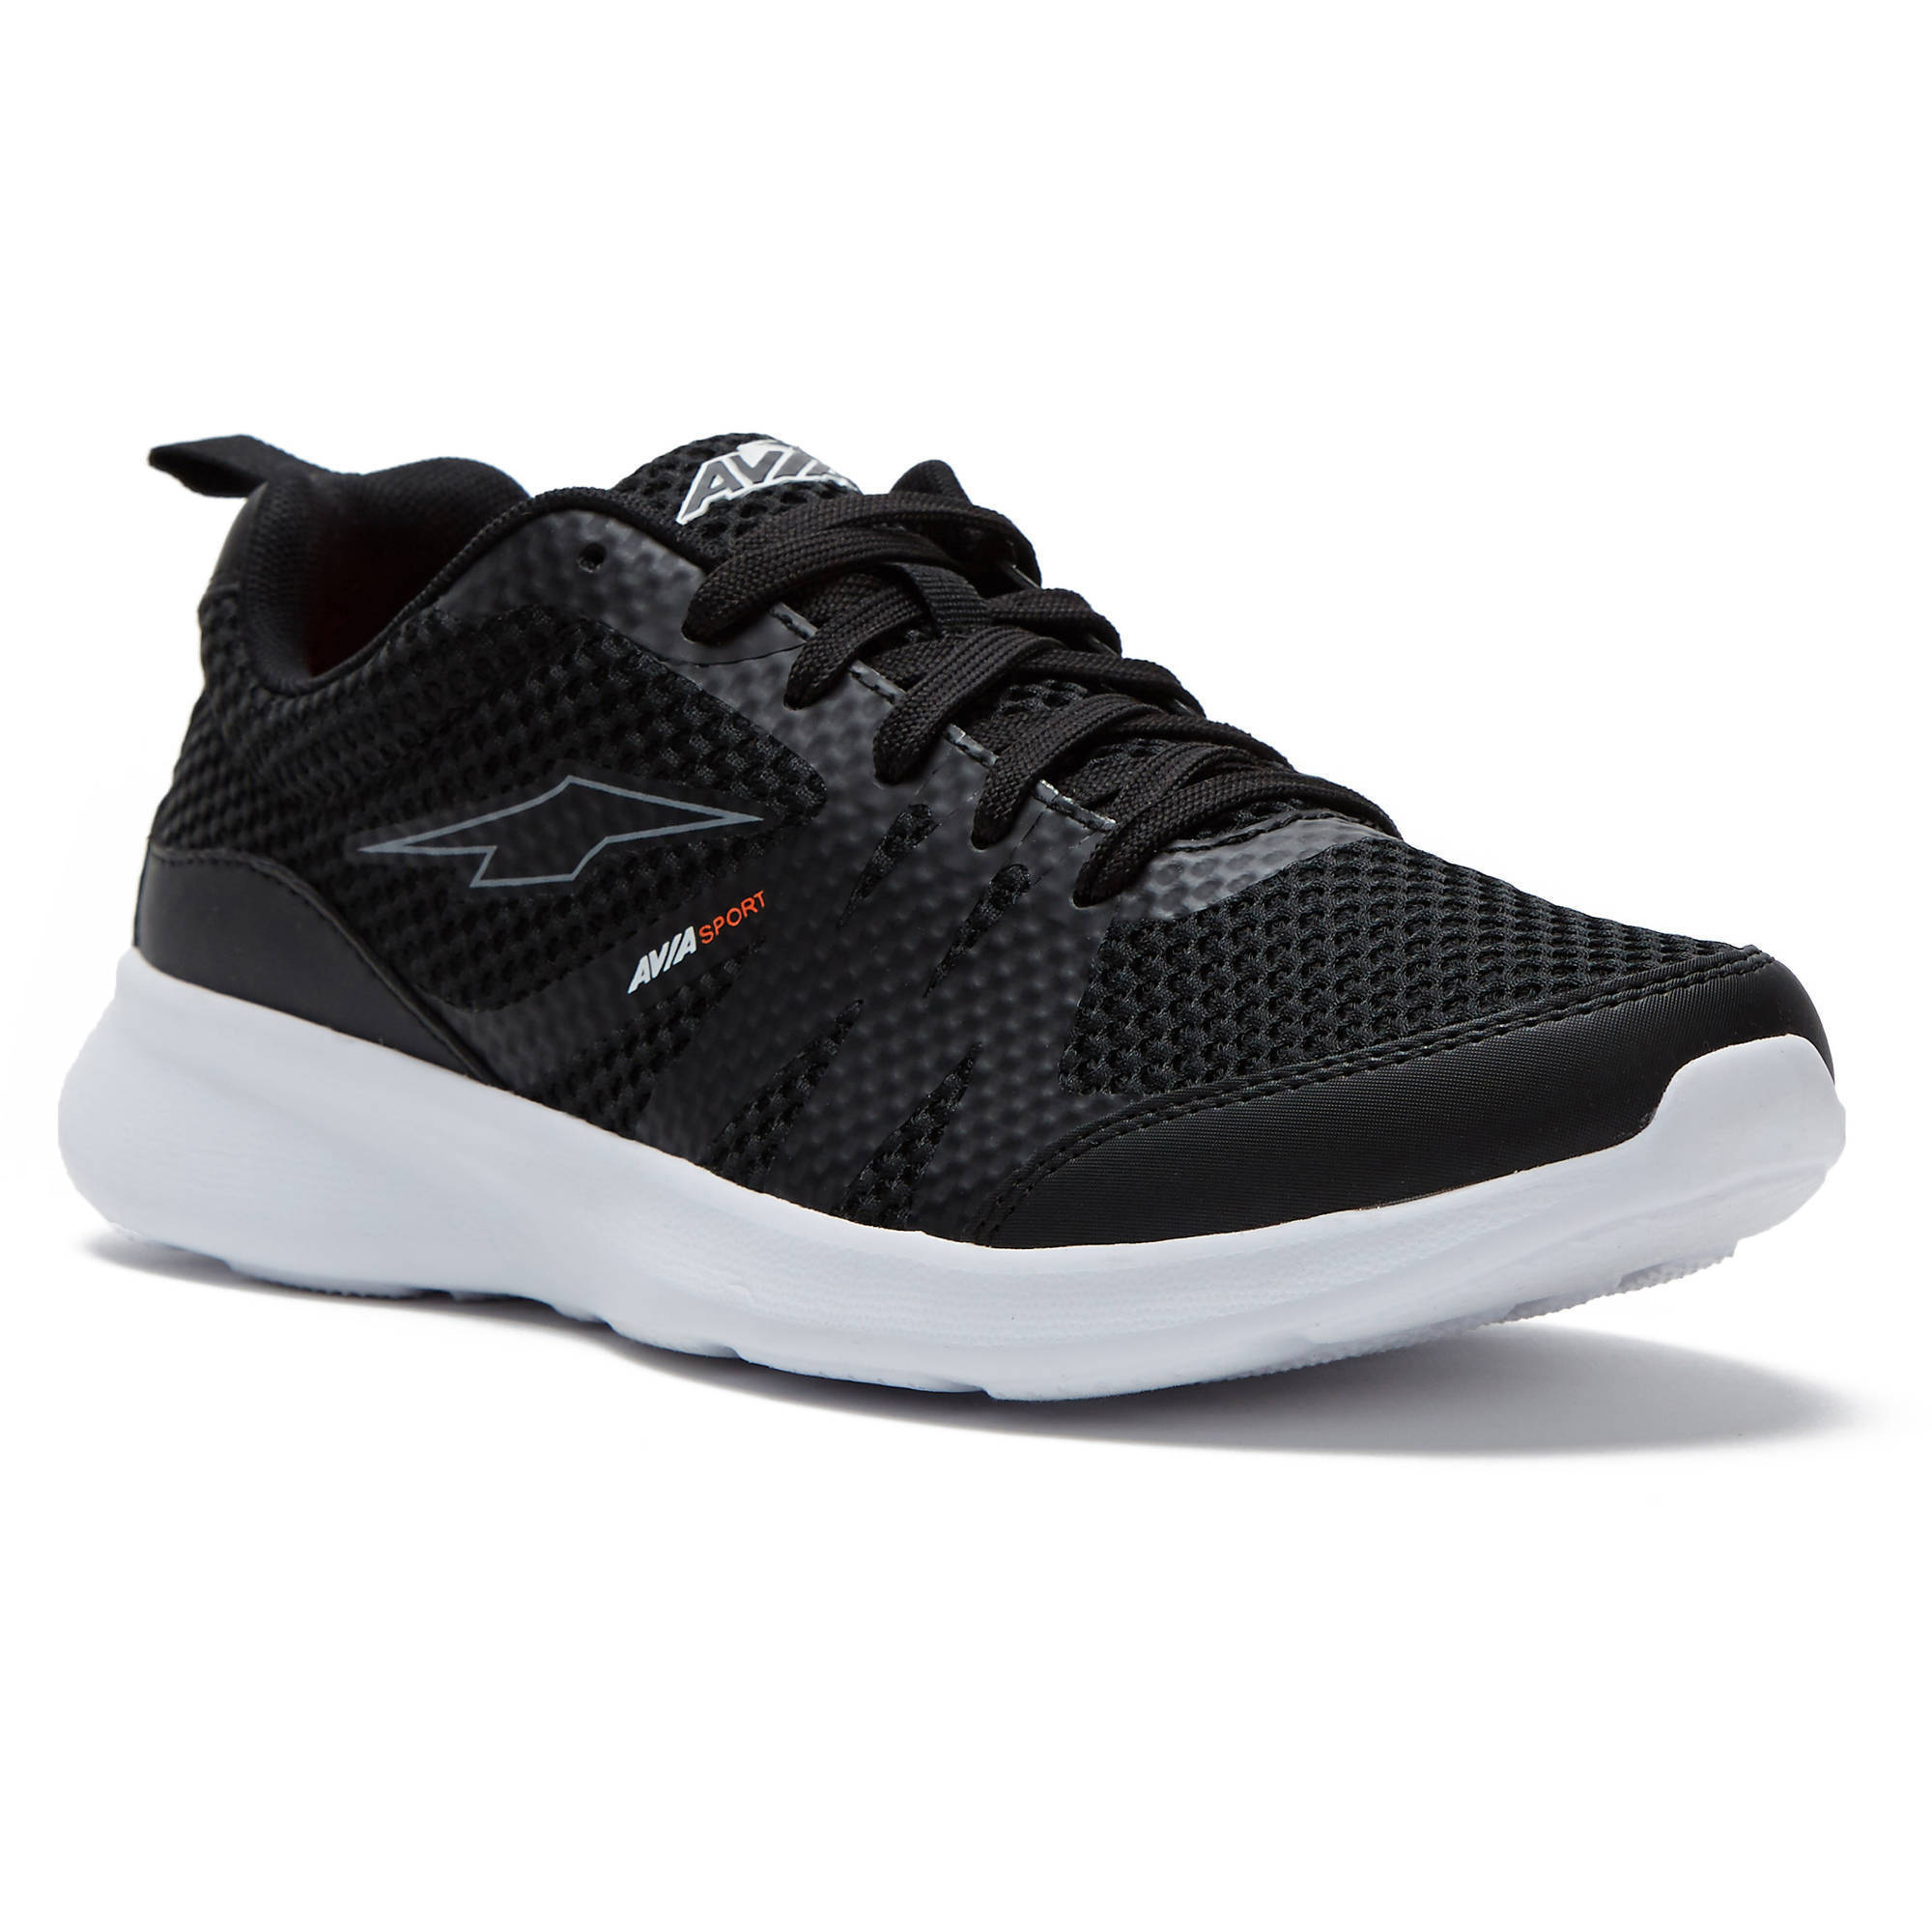 Avia Men's Capri Athletic Shoe - Walmart.com